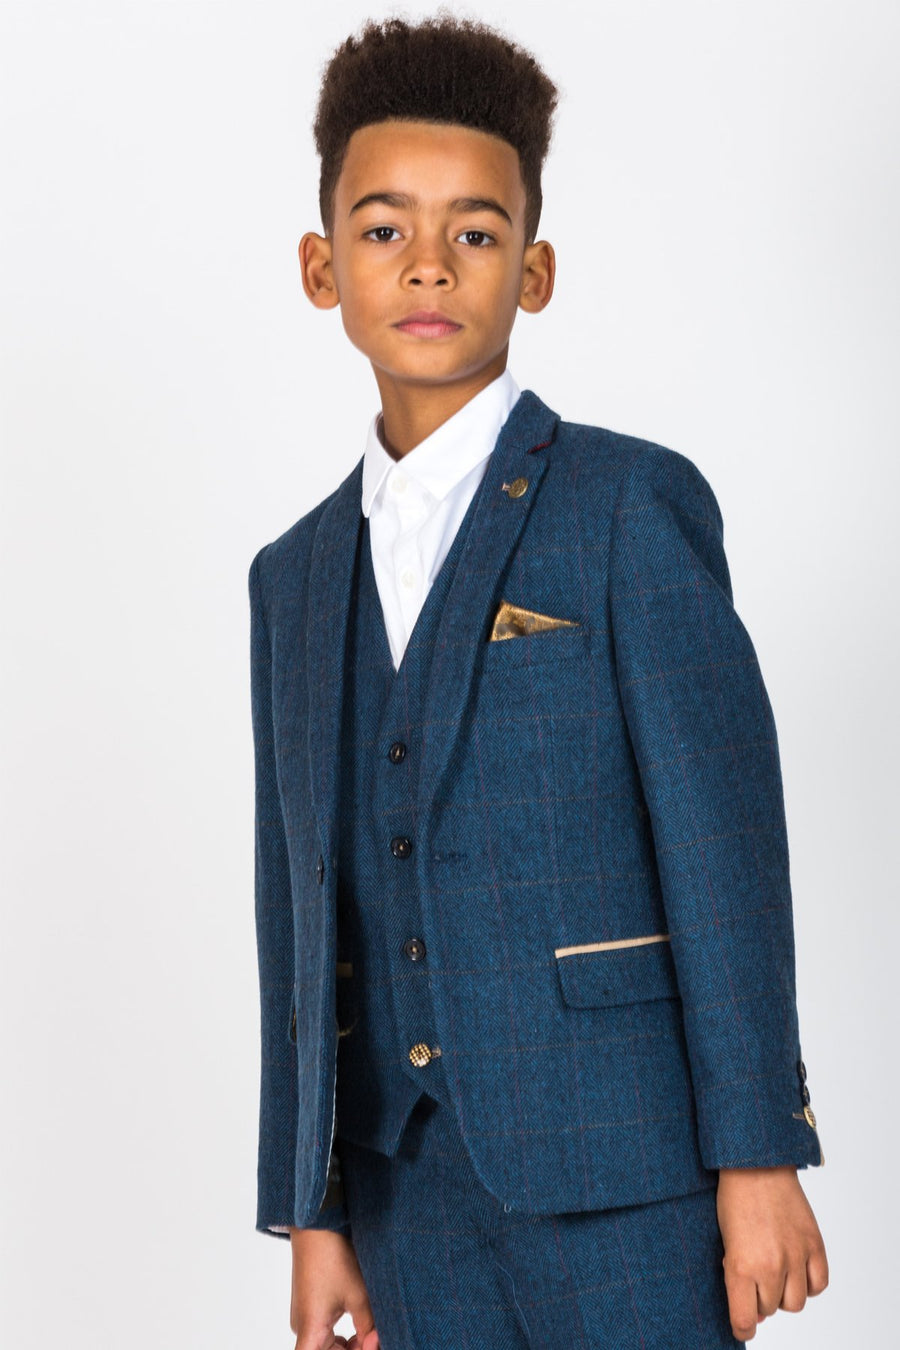 Dion Blue Boys Wedding Suit - Wedding Suit Direct